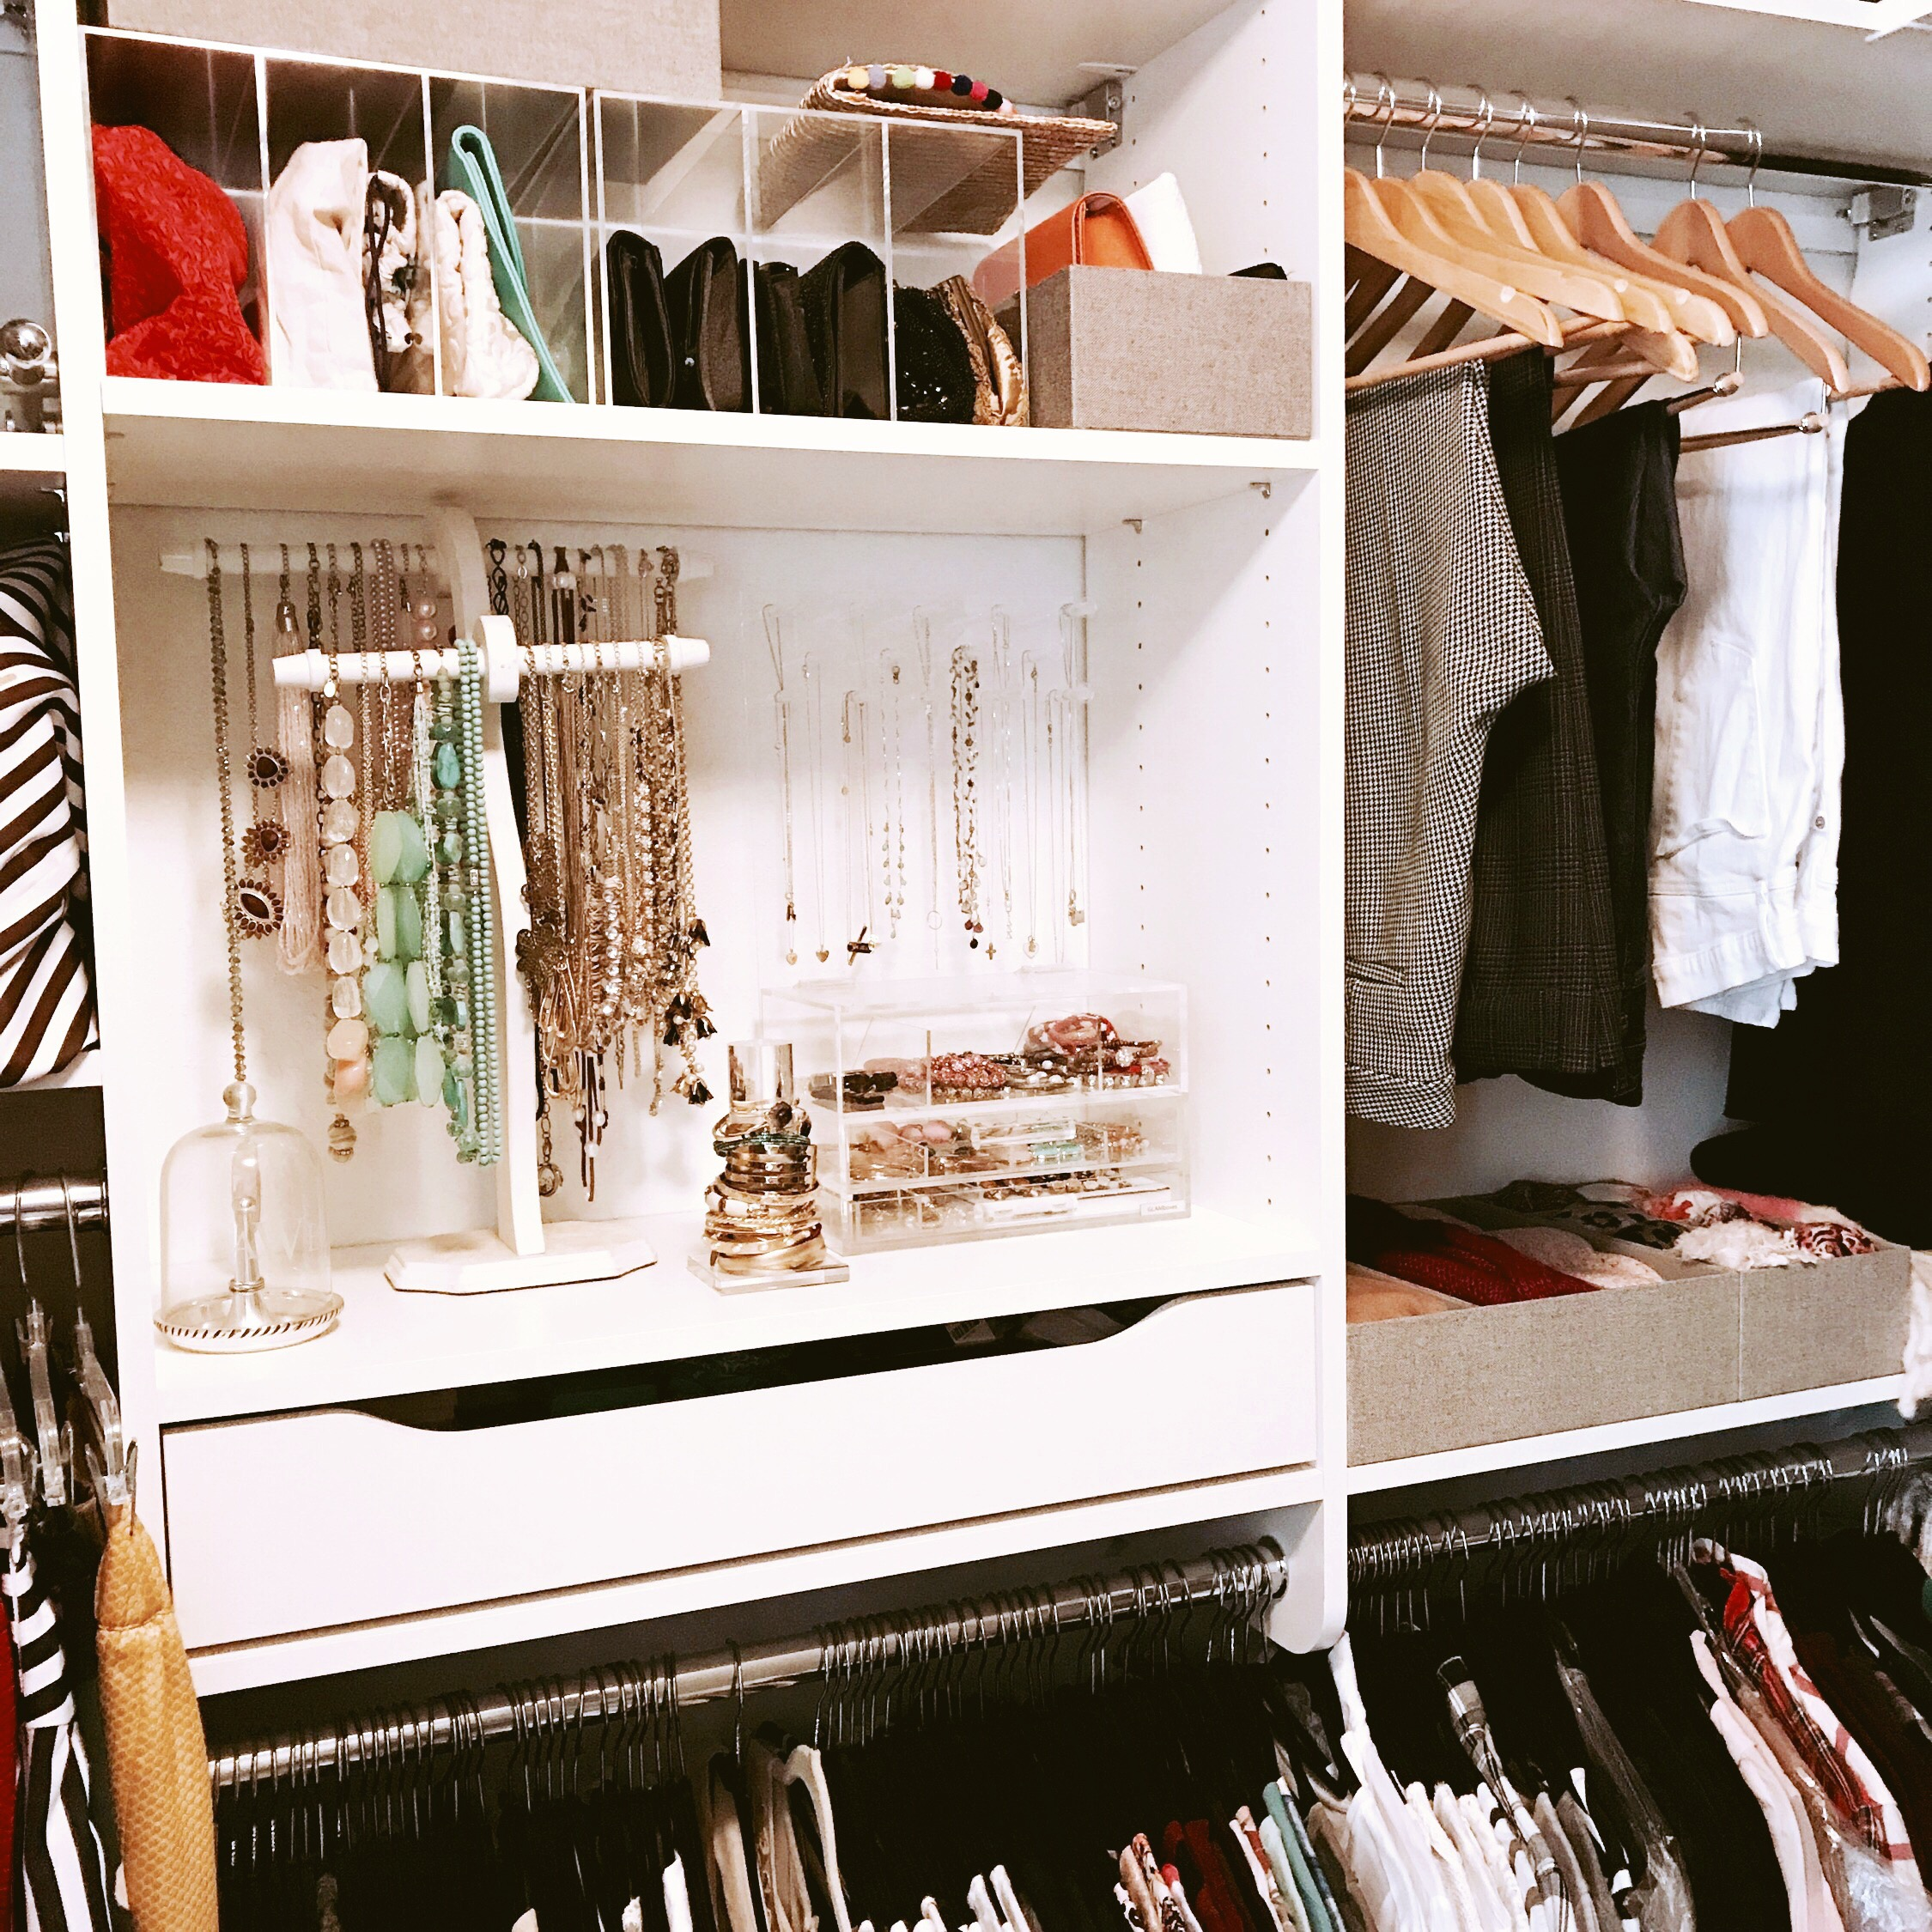 Eliminate Chaos. Live Better. - Call Now for a FREE Consultation and 3D Closet Design